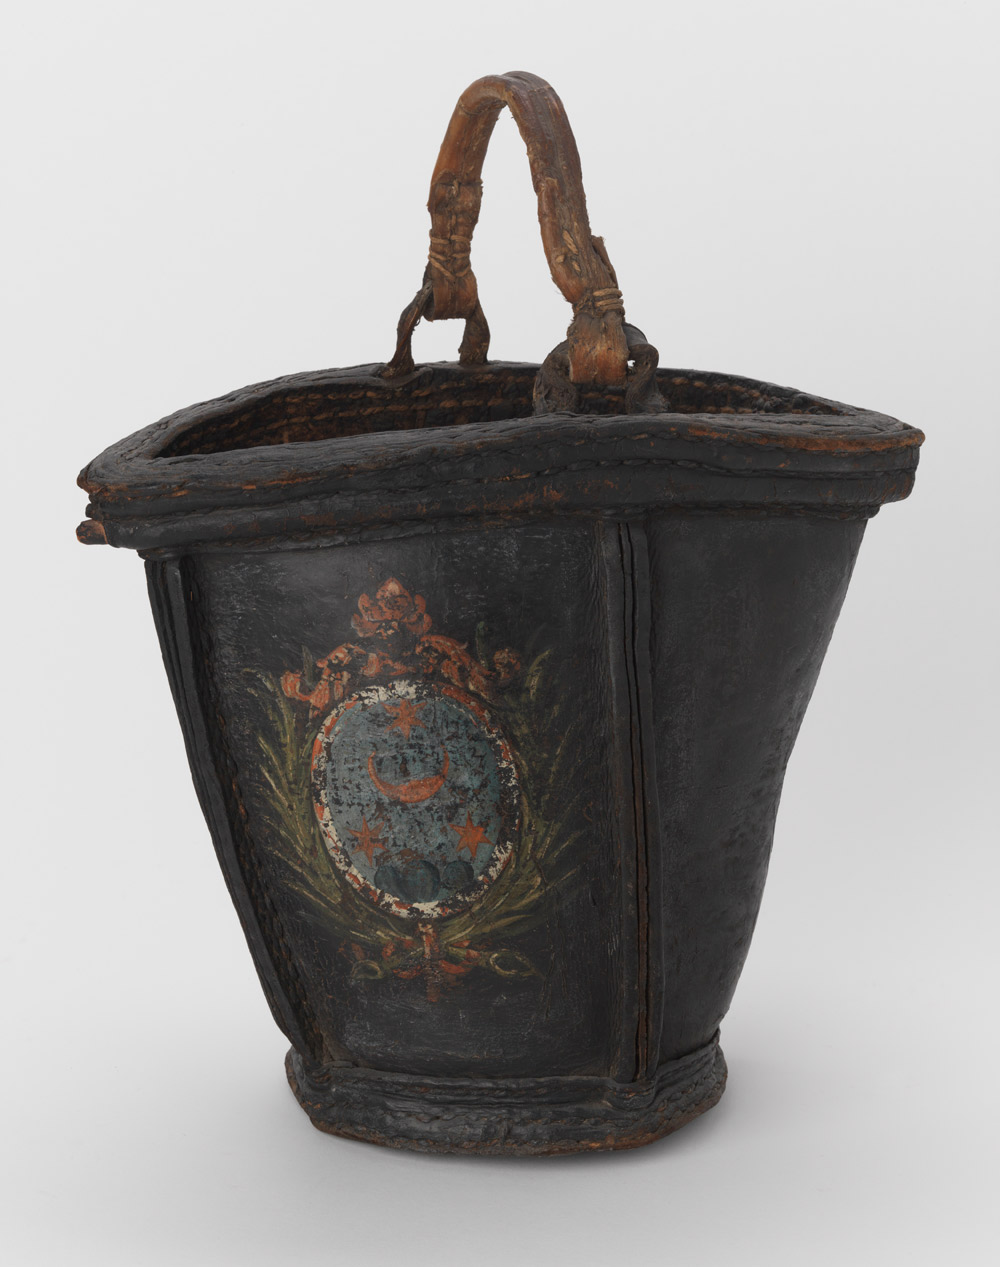 Leather fire bucket from the 18th Century